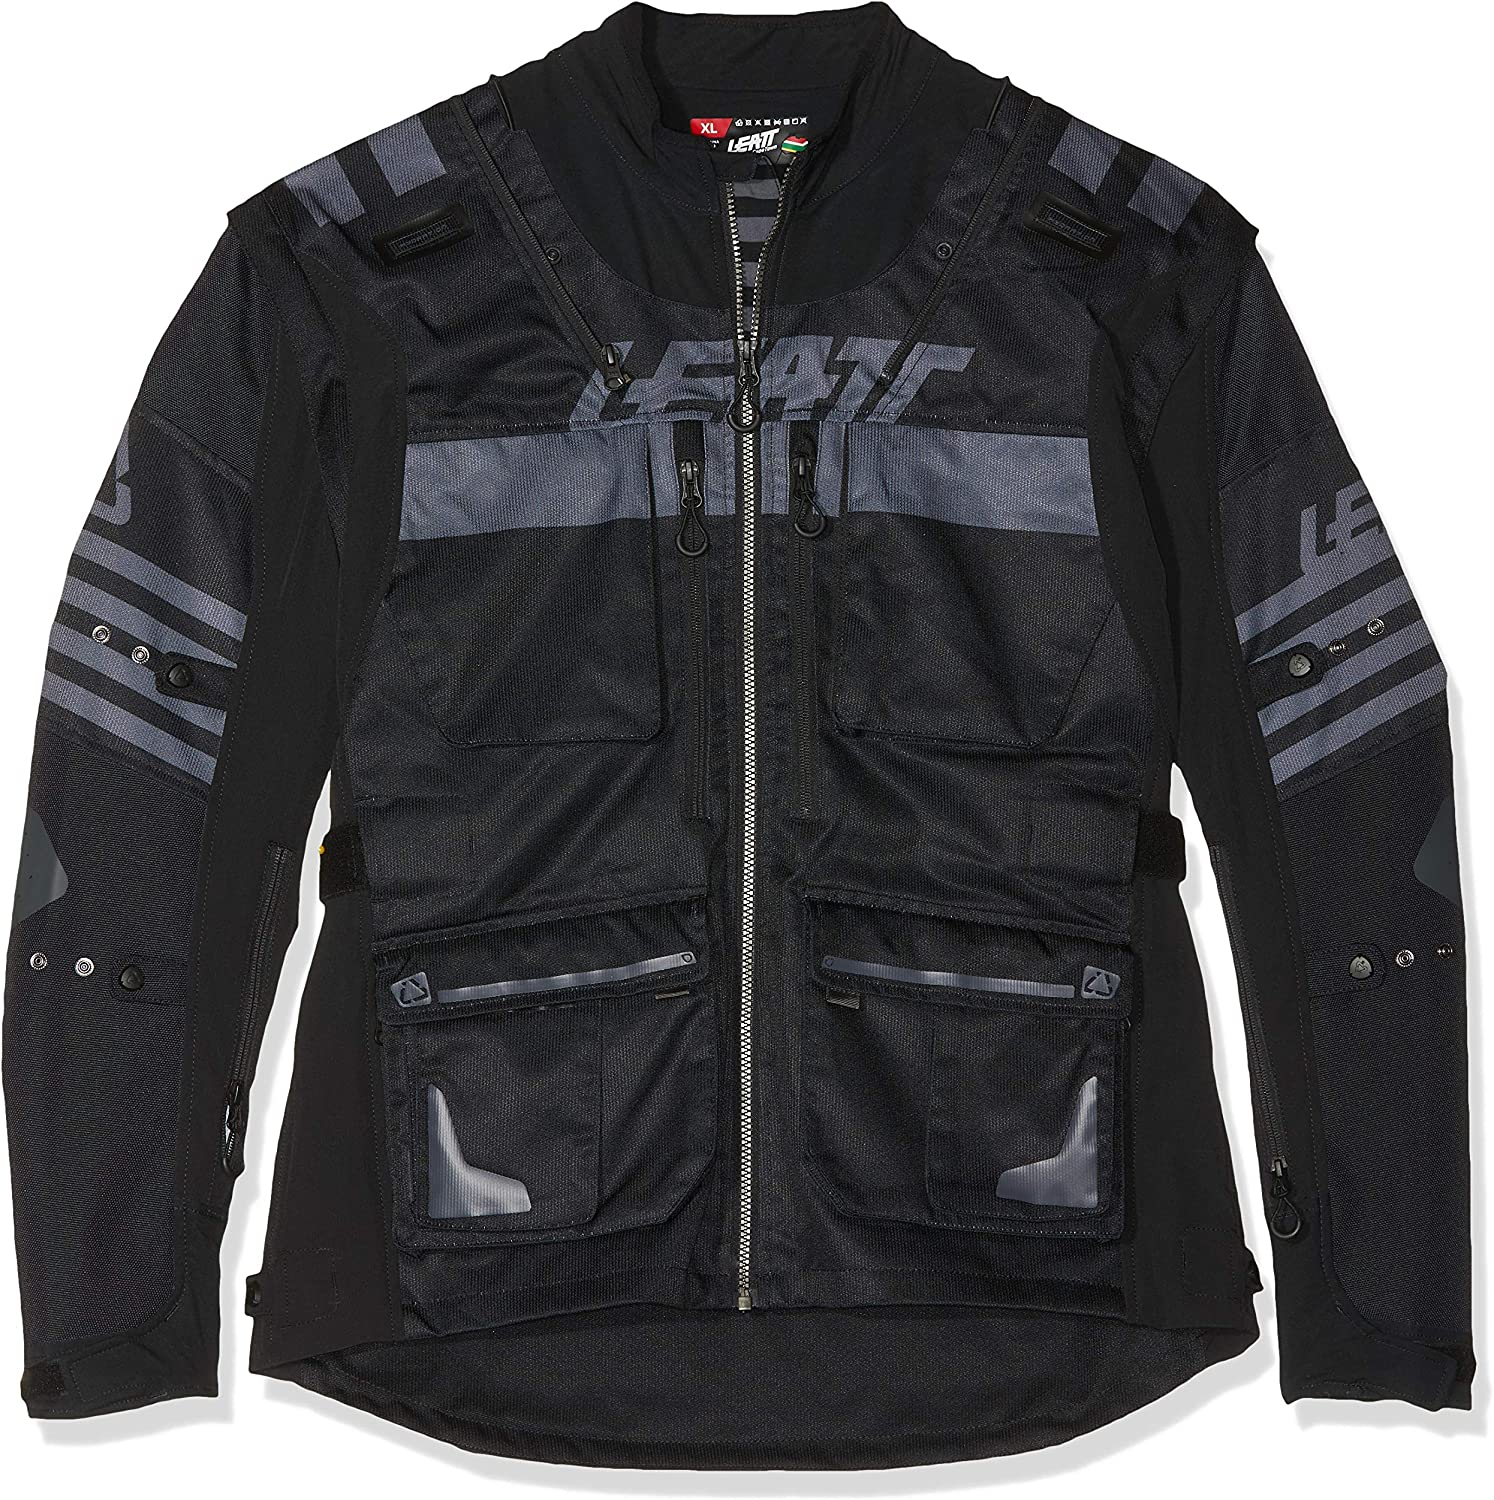 Small, Black Leatt Brace GPX 5.5 Enduro Riding Jacket